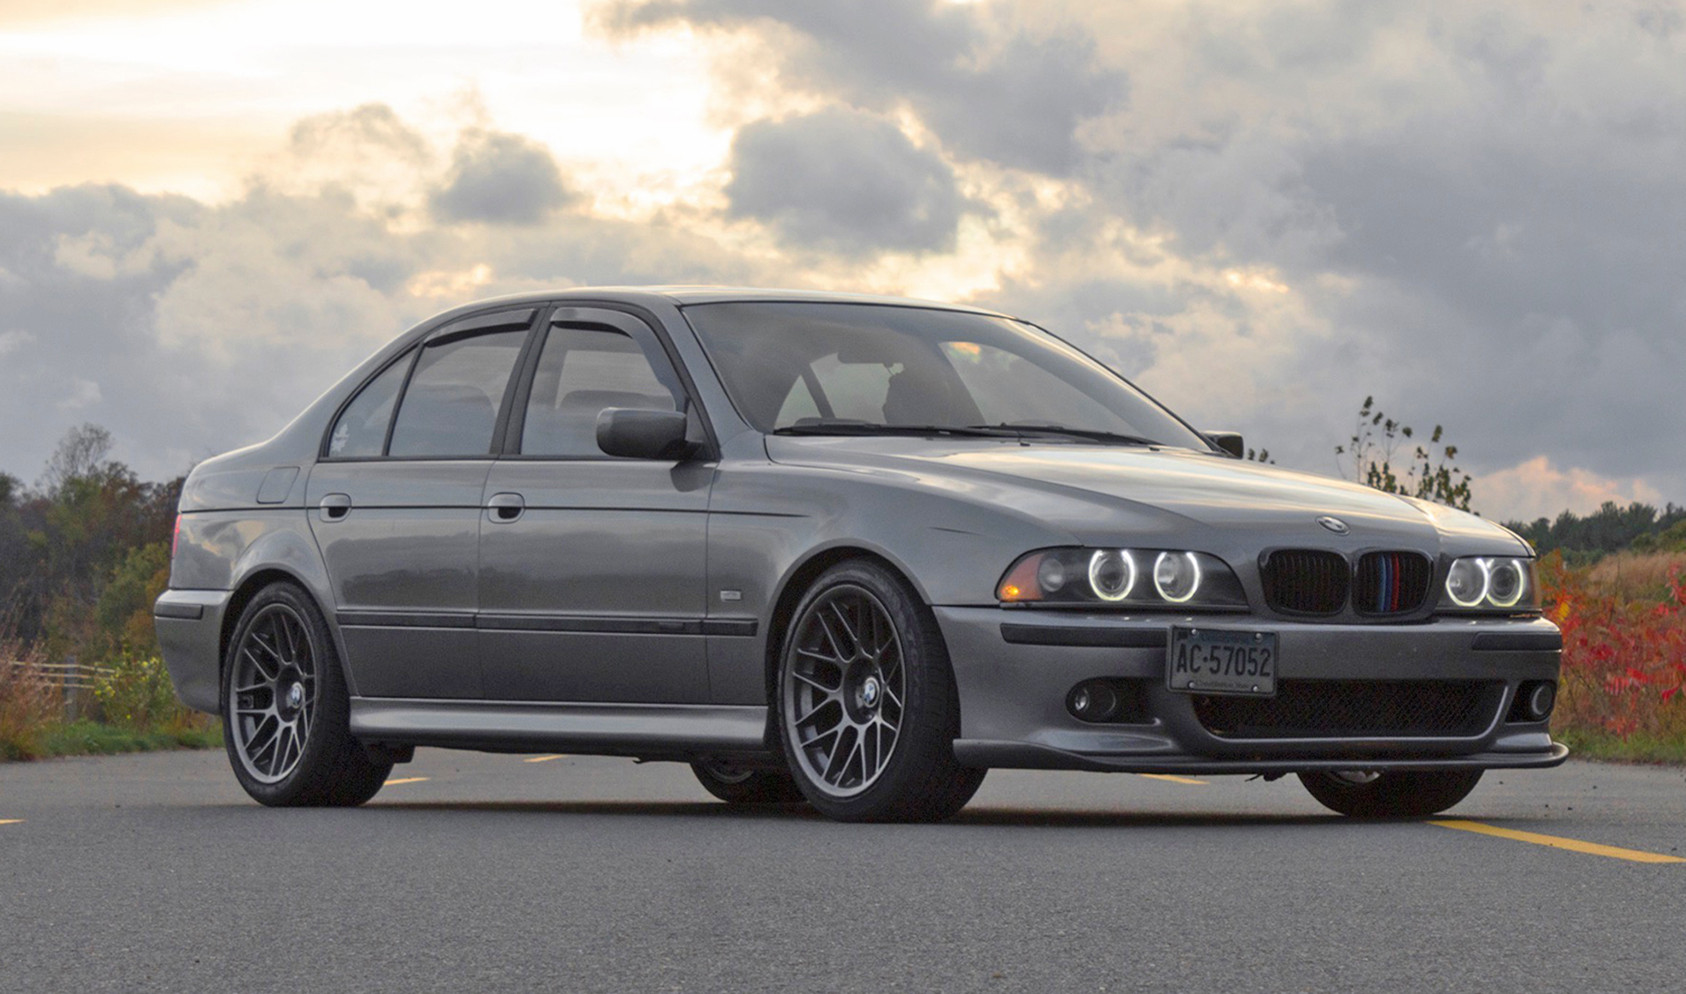 """E39 Non-Rotatable Square Fitment<br />Wheels: 18x9.5"""" ET22 Anthracite ARC-8<br />Tires: Toyo Proxes 245 front, 275 rear<br />Mods: 10mm front spacers"""